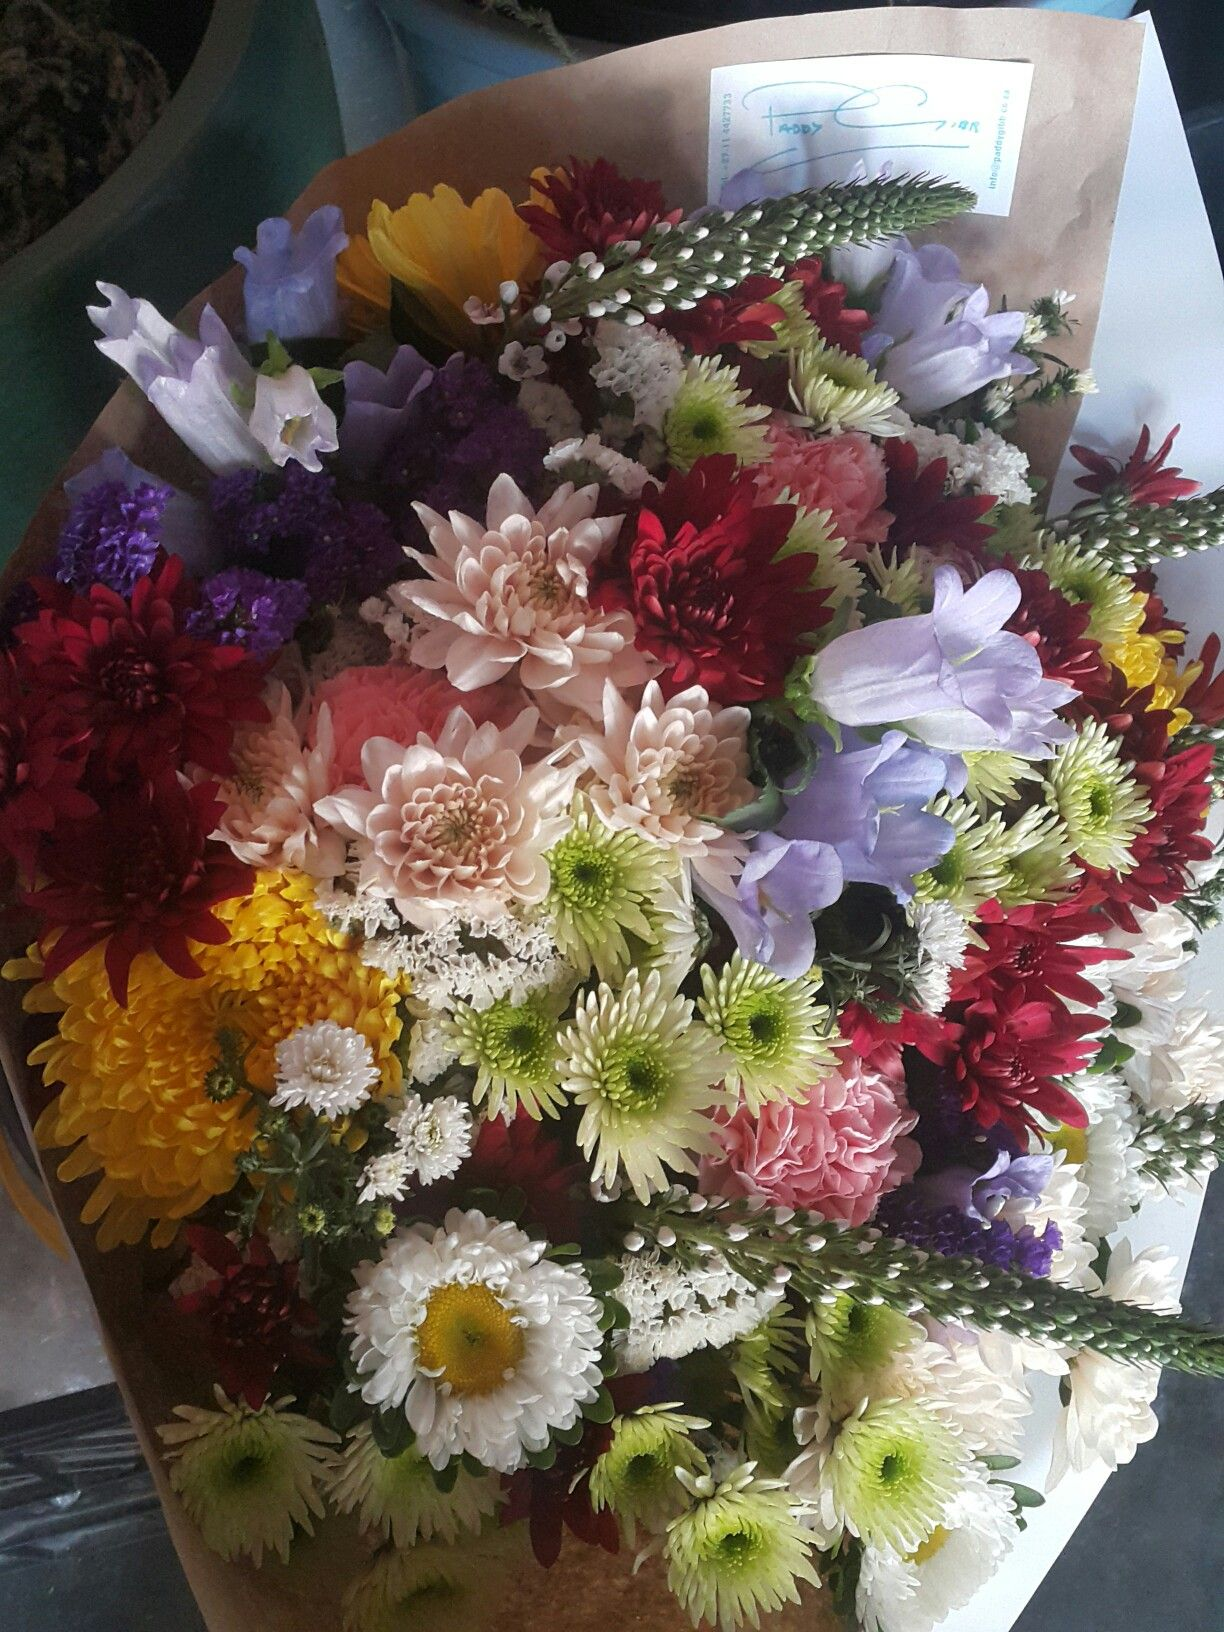 Bunch Of Flowers Visit Our Online Store At Www Paddygibb Co Za Flowers Florist Johannesburg Roses Arrangemen Bunch Of Flowers Floral Arrangements Floral